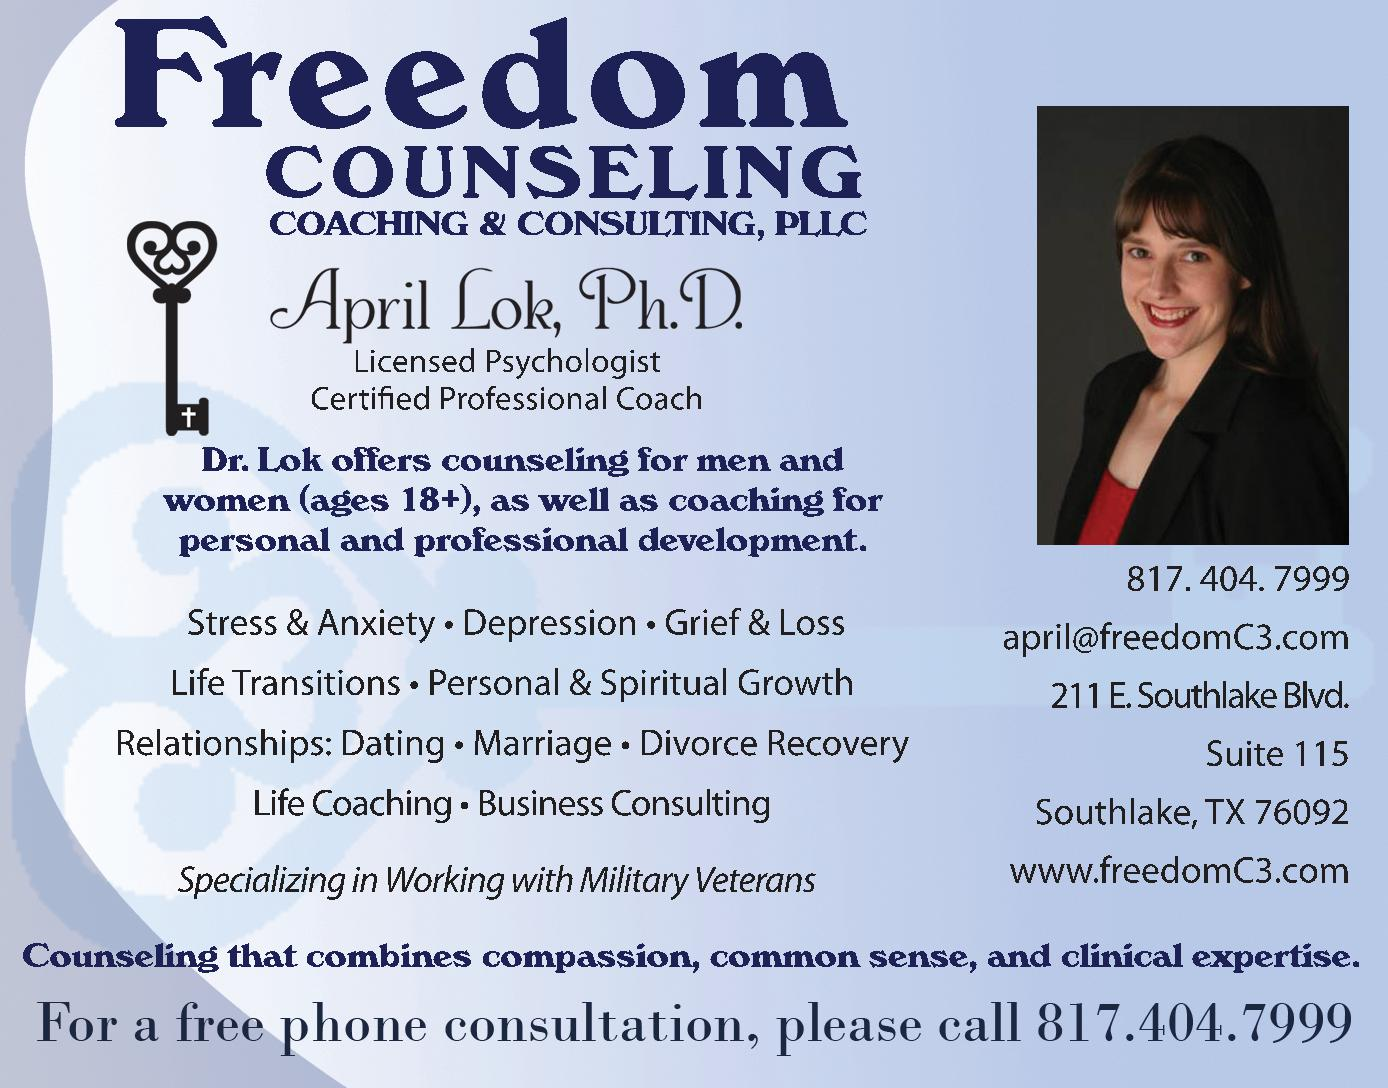 Freedom Counseling, Coaching & Consulting, PLLC